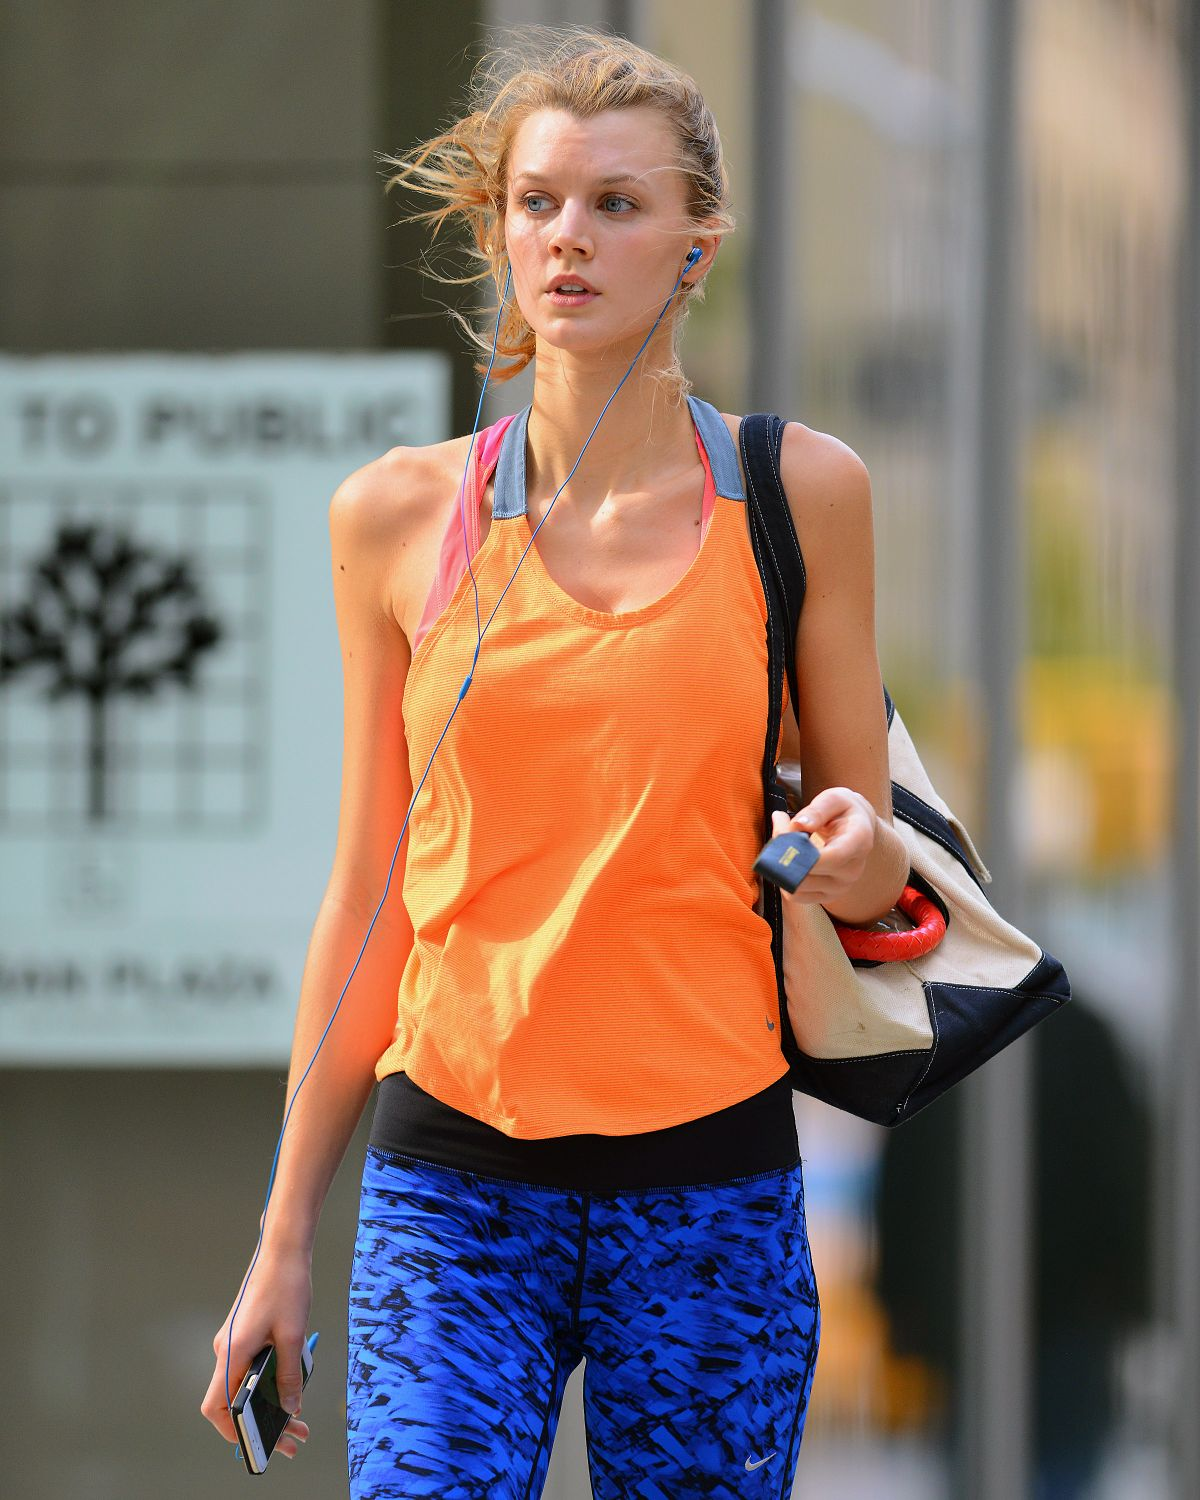 CONSTANCE JABLONSKI in Leggings Leaves a Gym in New York 10/29/2015